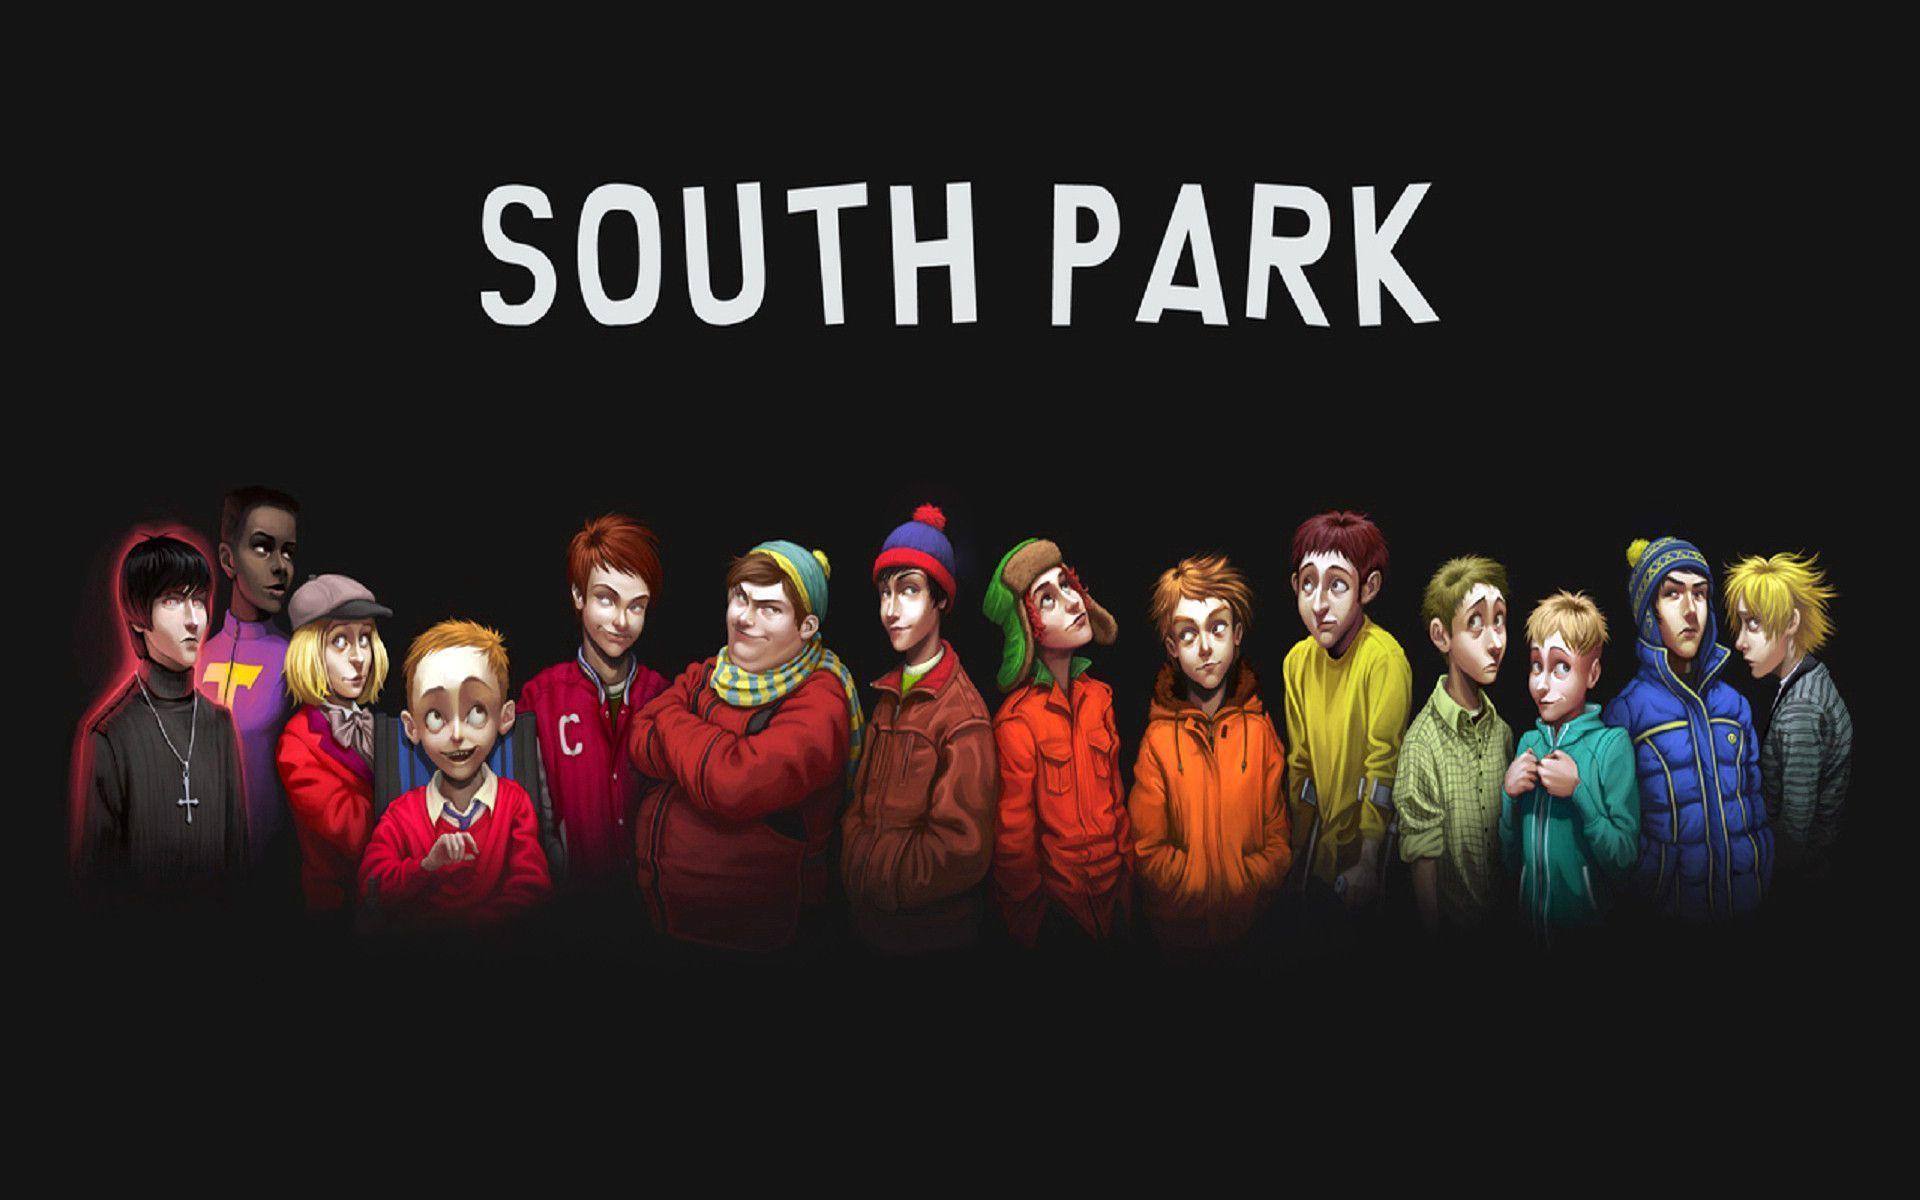 South Park Wallpapers